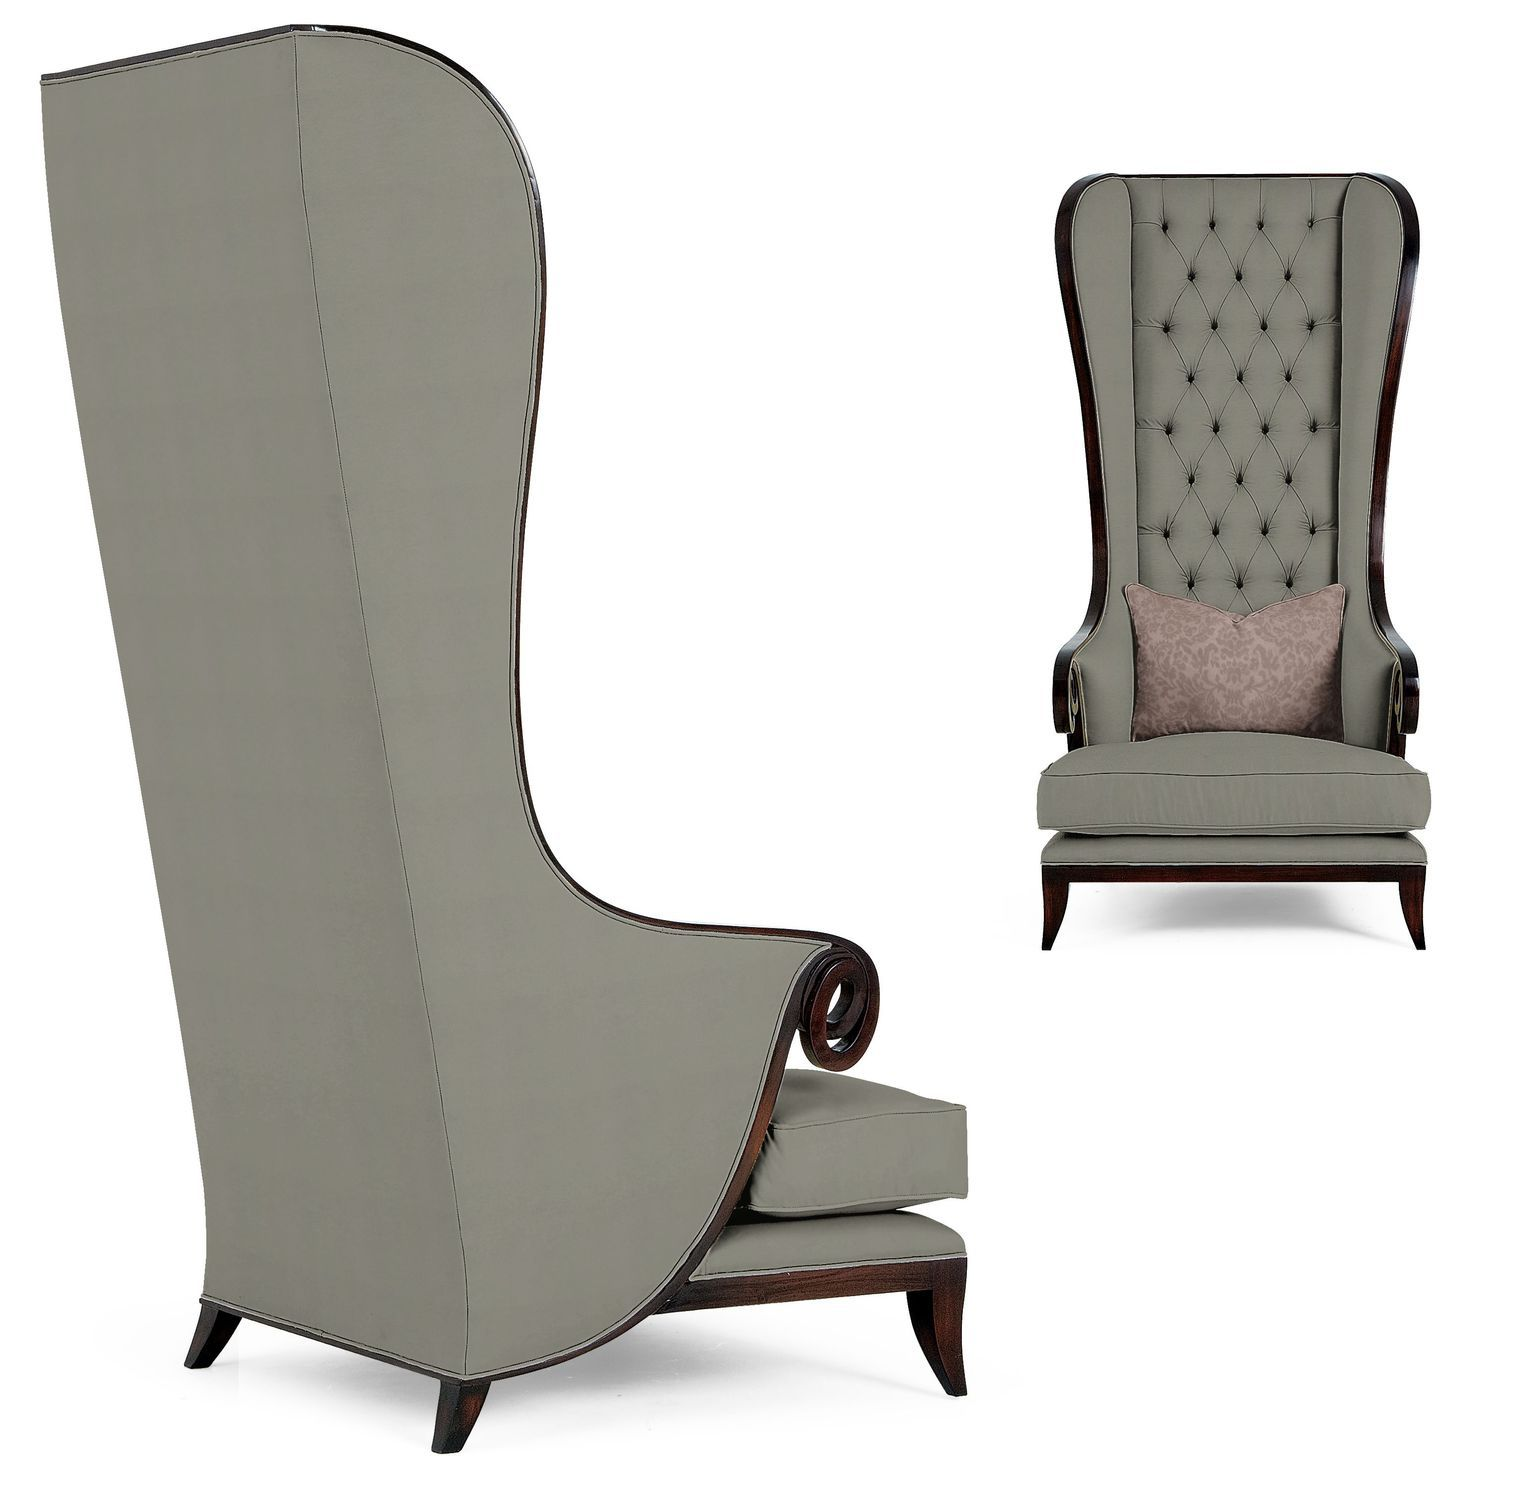 fauteuil a oreille design id es de d coration int rieure french decor. Black Bedroom Furniture Sets. Home Design Ideas